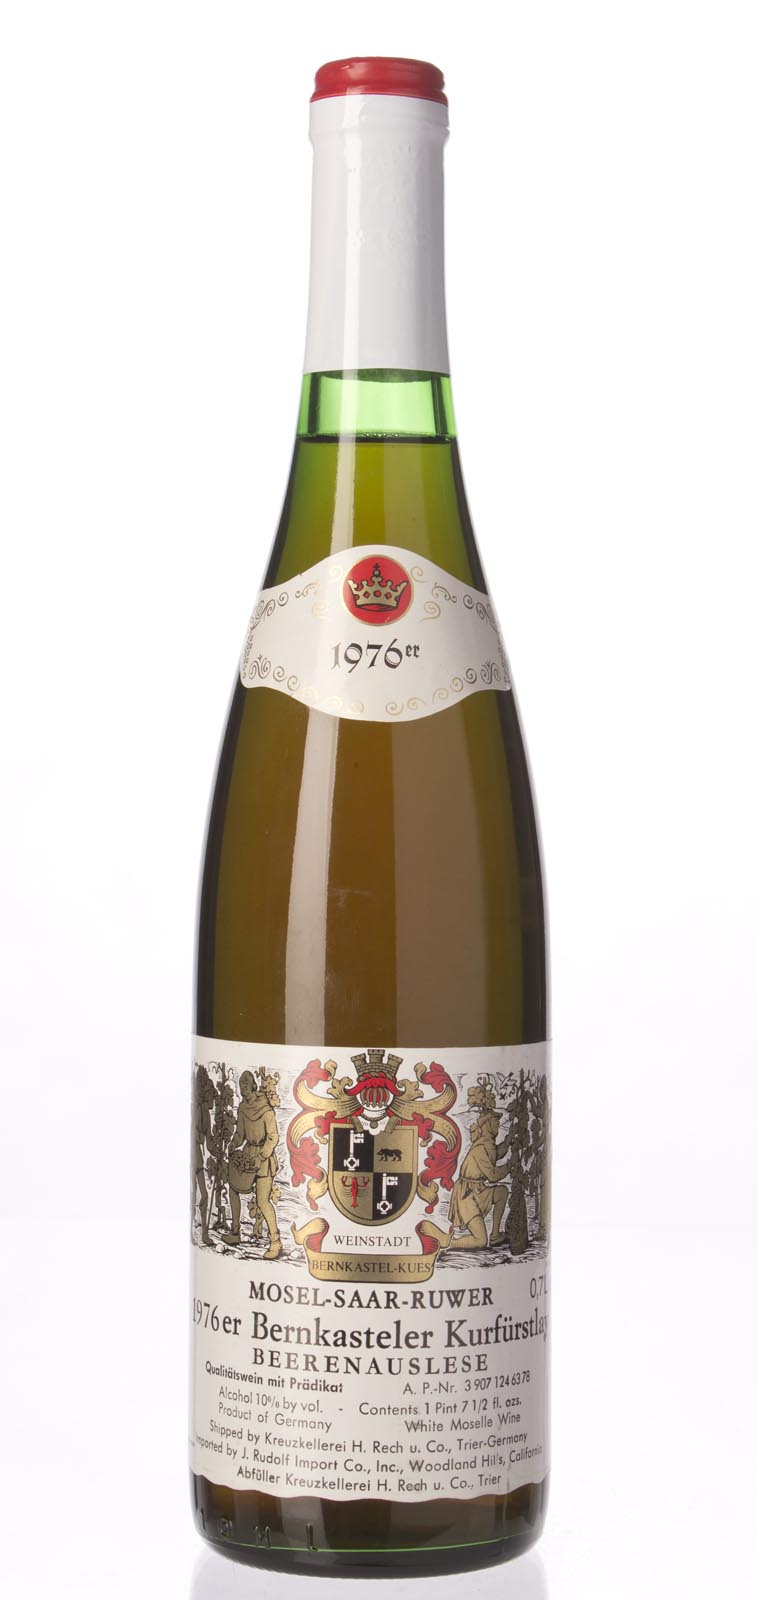 Kreuzkellerei H. Rech Bernkasteler Kurfustlay Riesling Beerenauslese 1976, 750mL () from The BPW - Merchants of rare and fine wines.